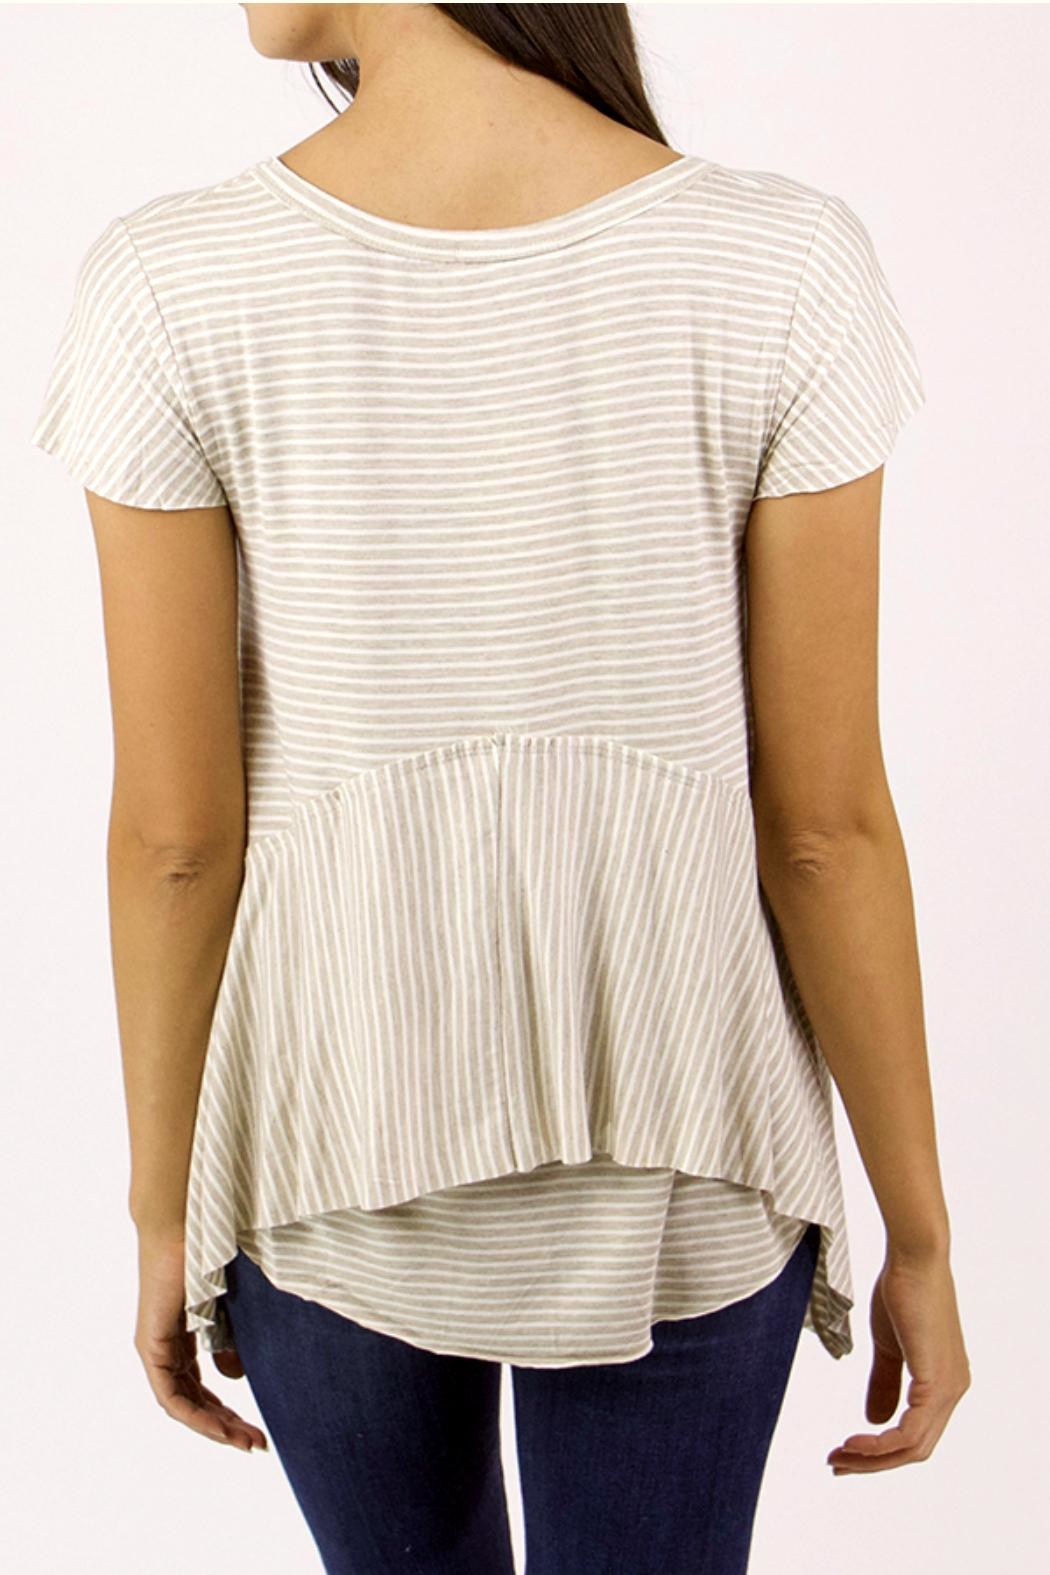 Grace & Lace Striped Jersey Tee - Front Full Image